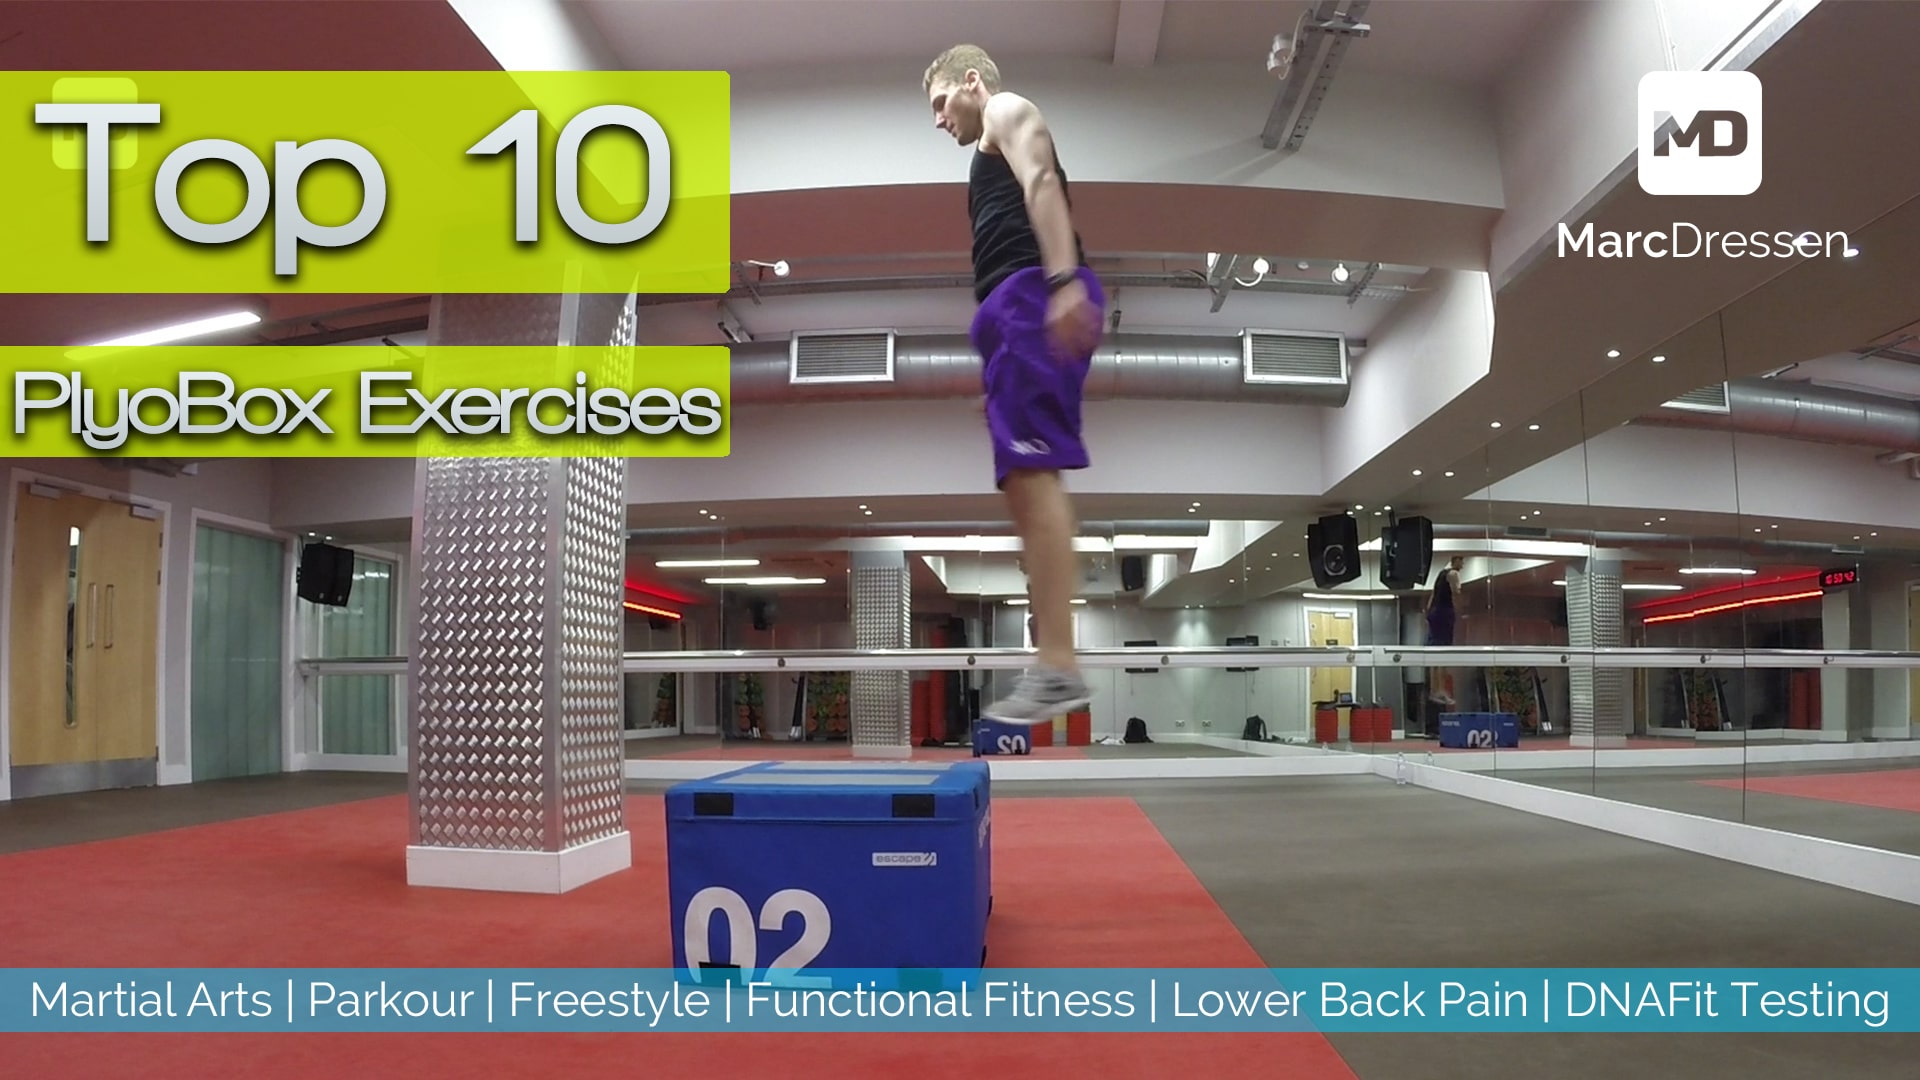 Top 10 Plyo Box Exercises